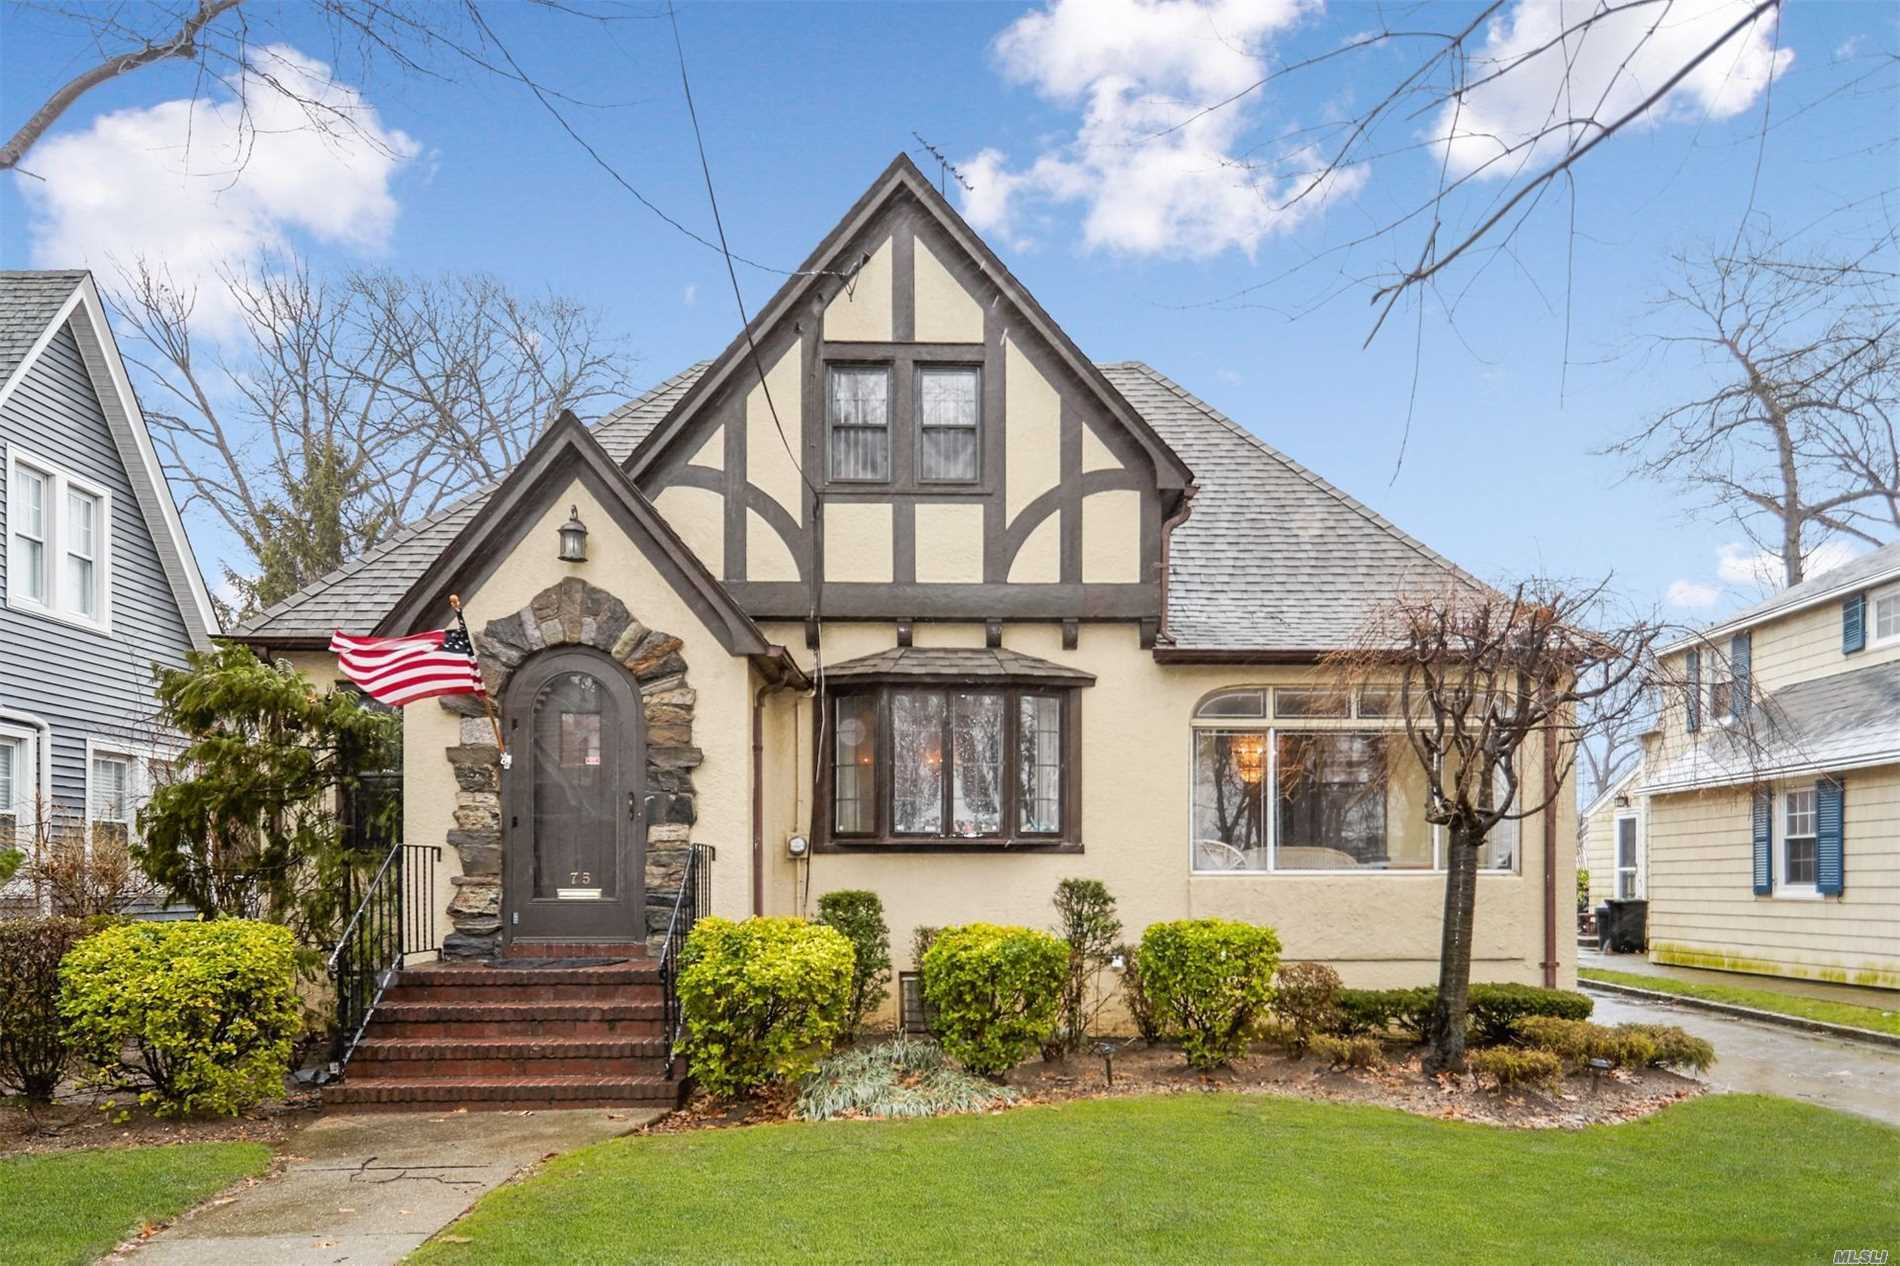 Pristine Tudor/Cape On 50X100 Property In The West End Of The Incorporated Village Of Floral Park.First Floor Has Living Room With Fireplace, Fdr, 2 Bedrooms, Full Bath, Eik, And Enclosed Front Porch. Second Floor Has 1 Bedroom Plus 1 Bonus Room And Attic. Full Finished Basement With Fp. Backyard Has Pavers Patio And Pavers Driveway With 2 Car Garage. Alarm System.